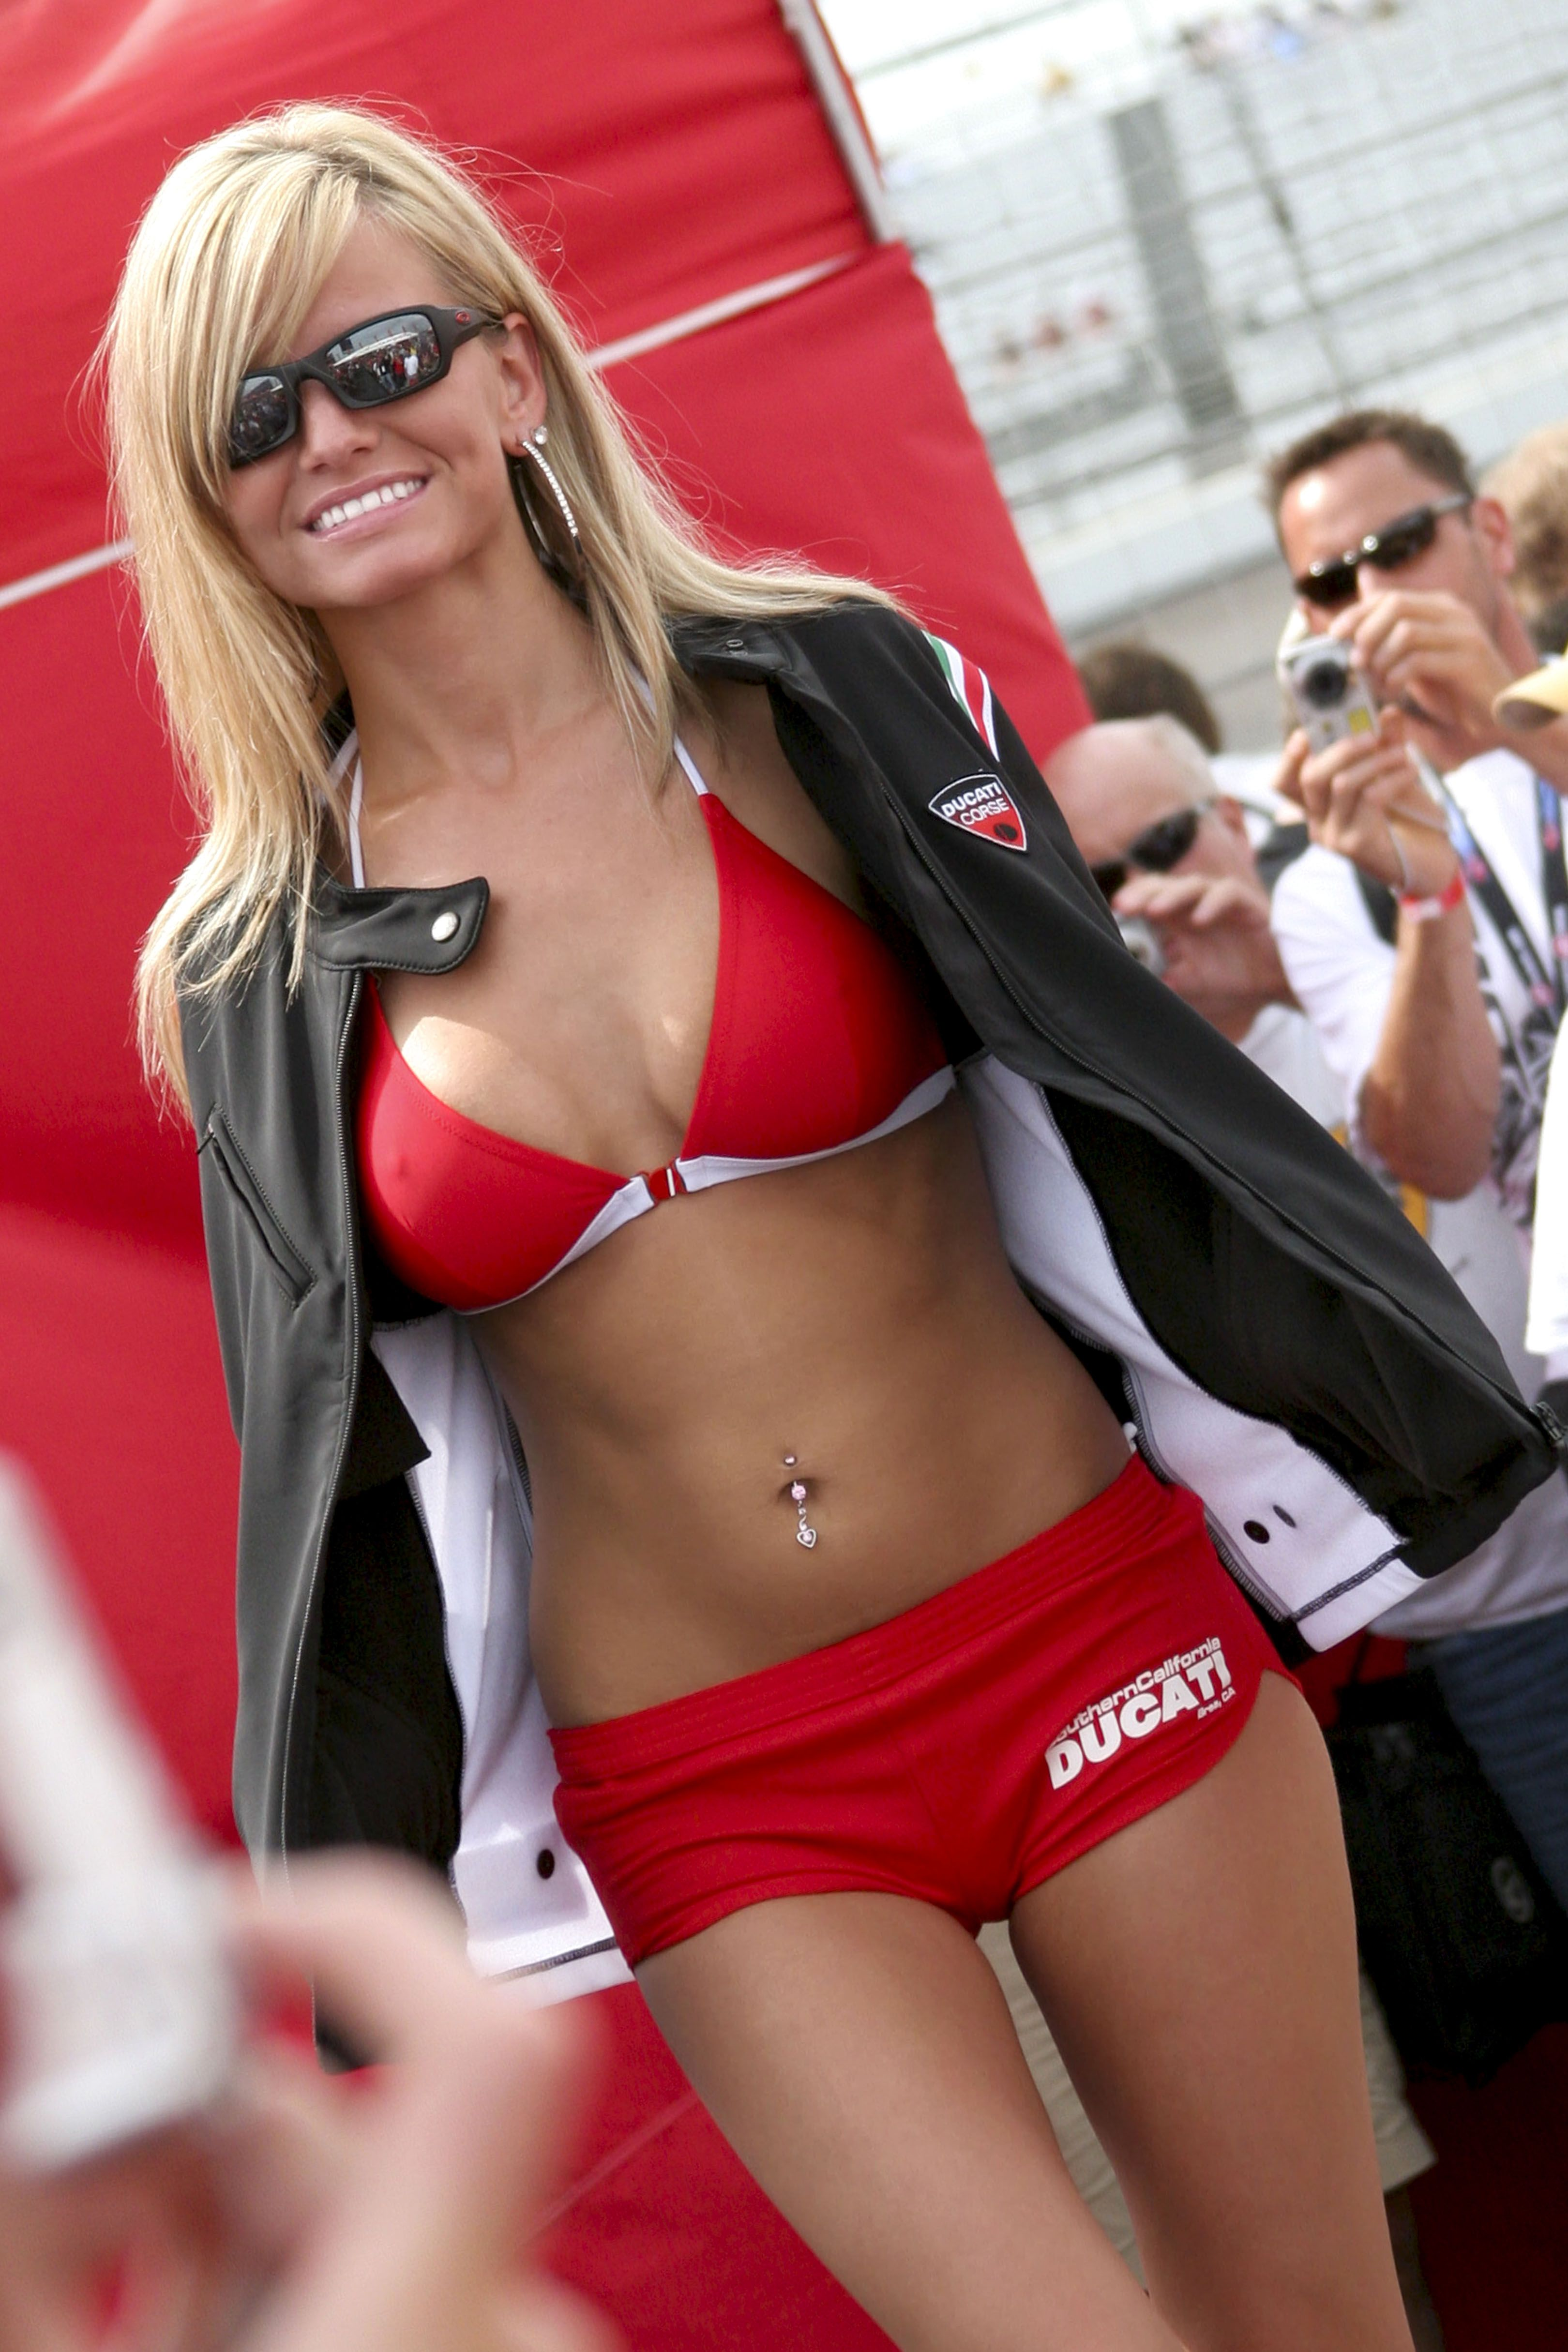 Ducati Monster  And Babes